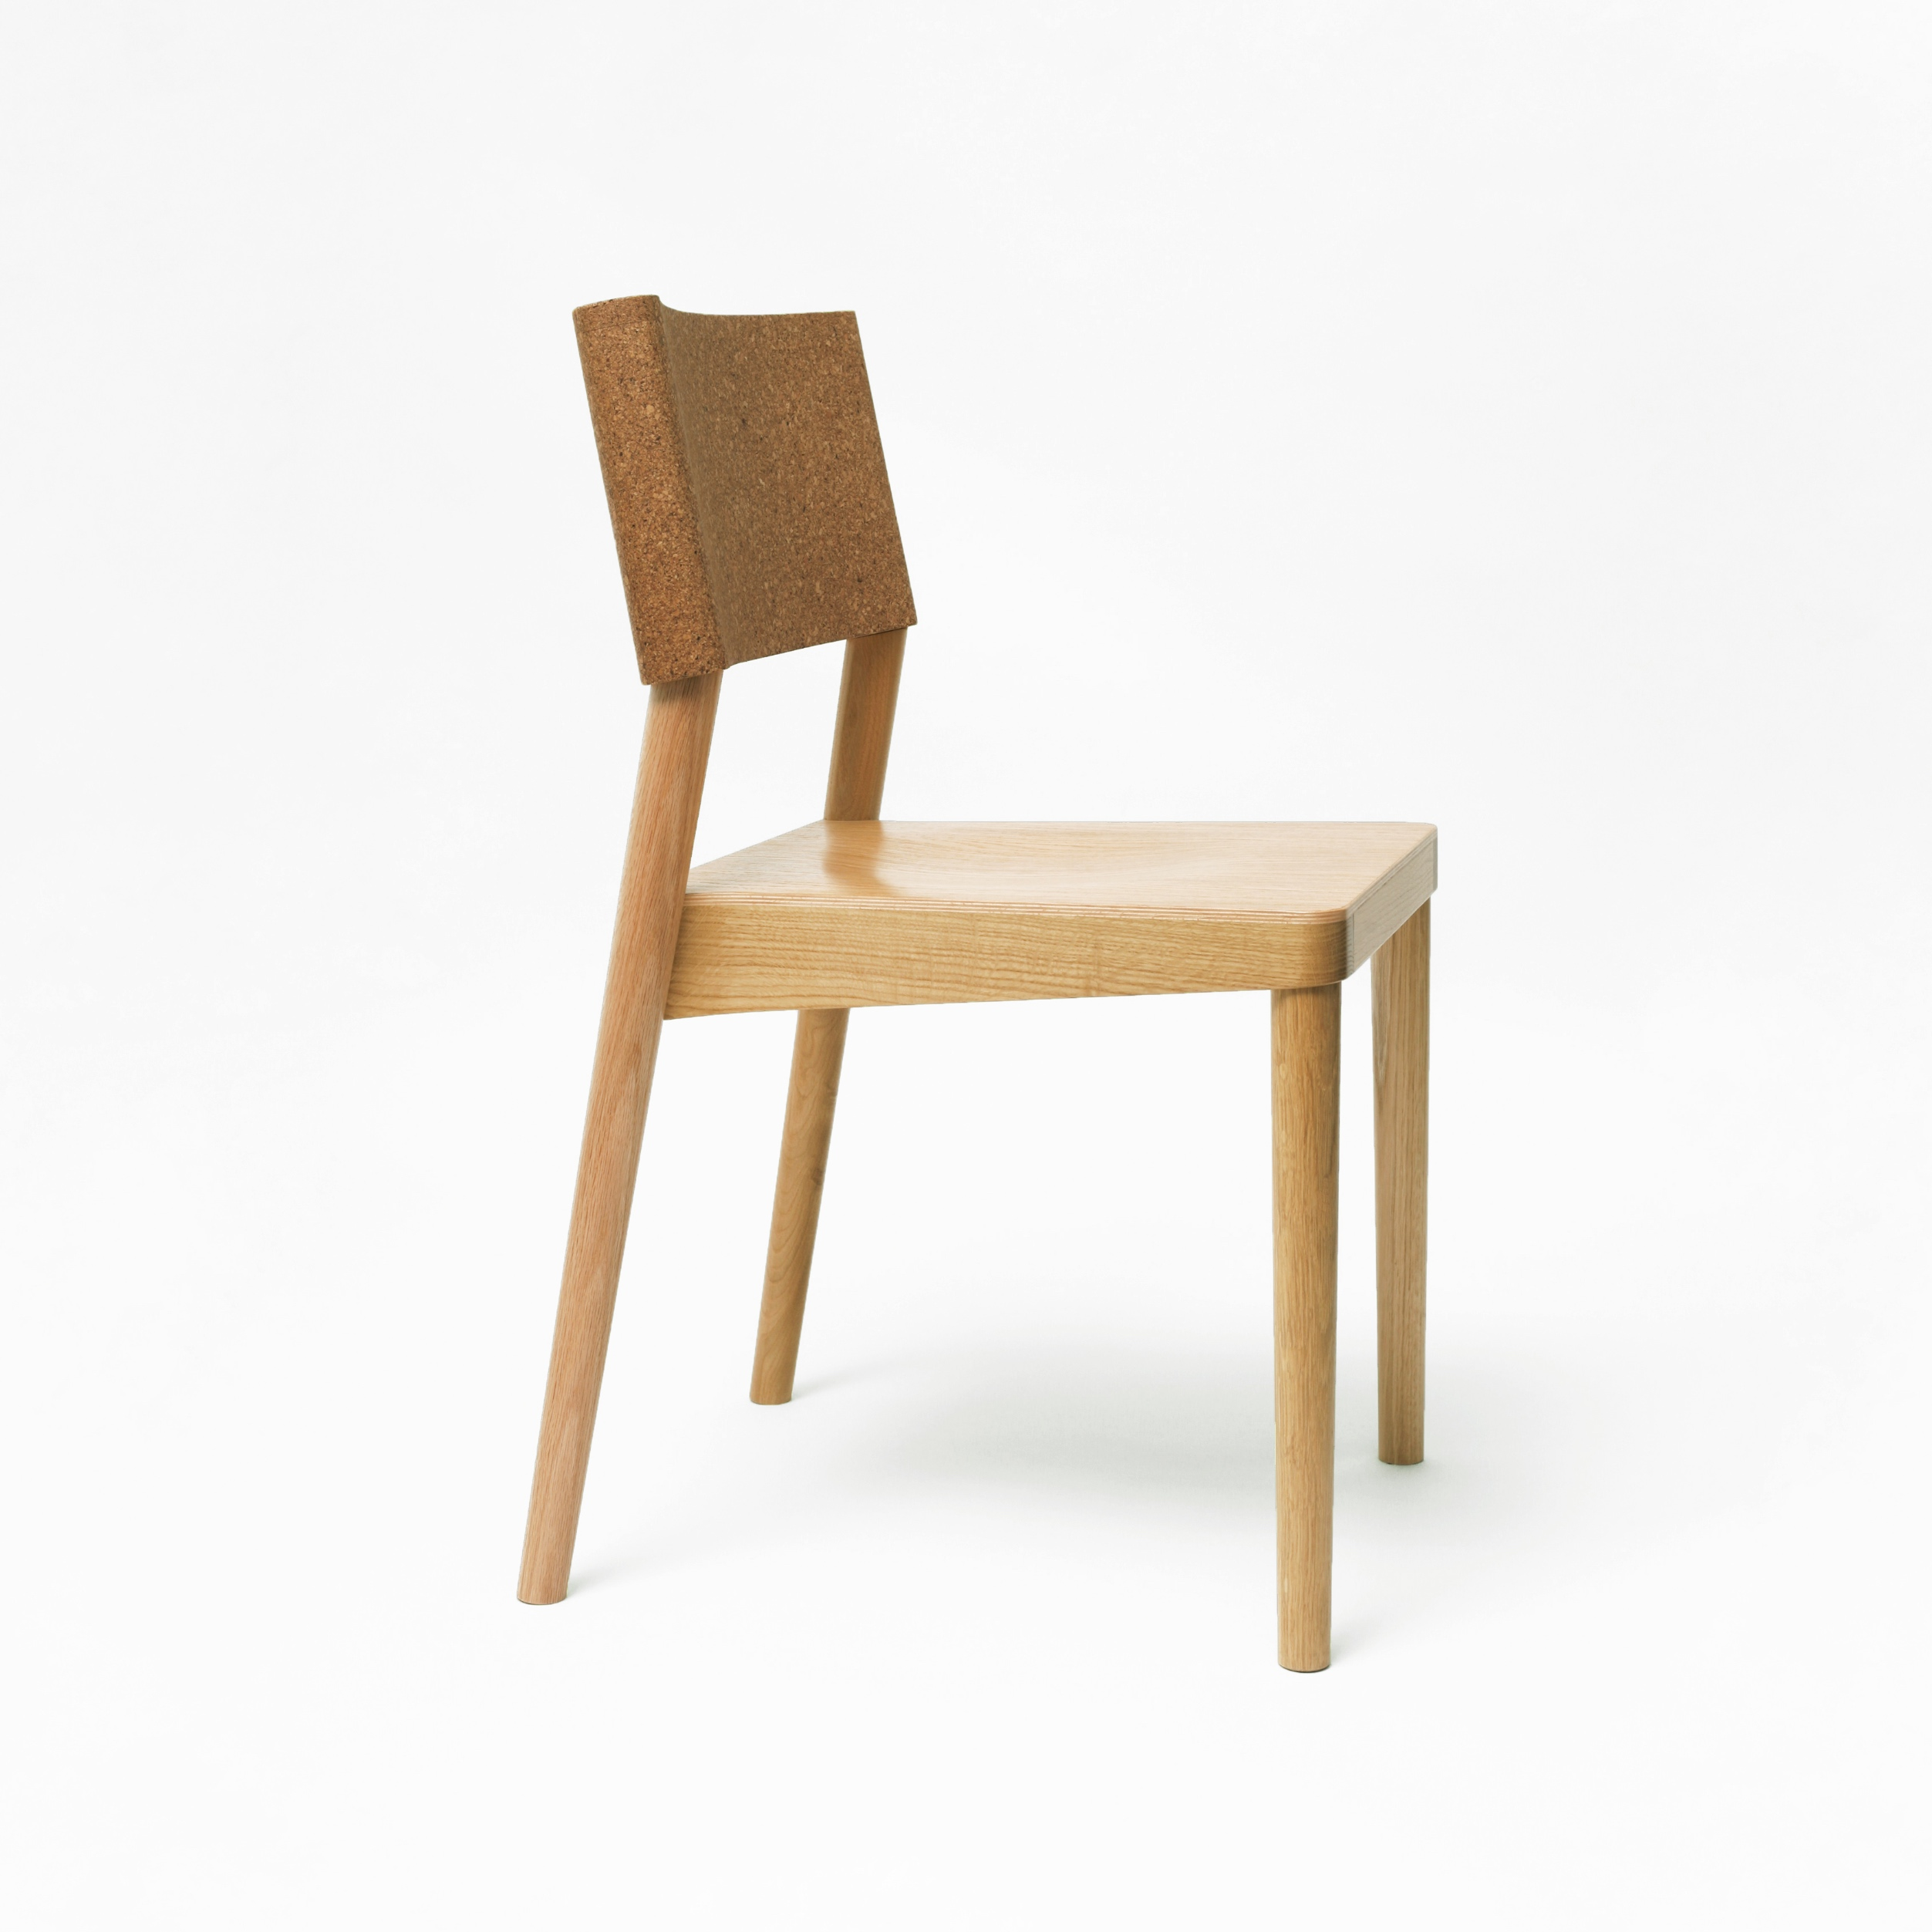 corkback chair_1 edit_square